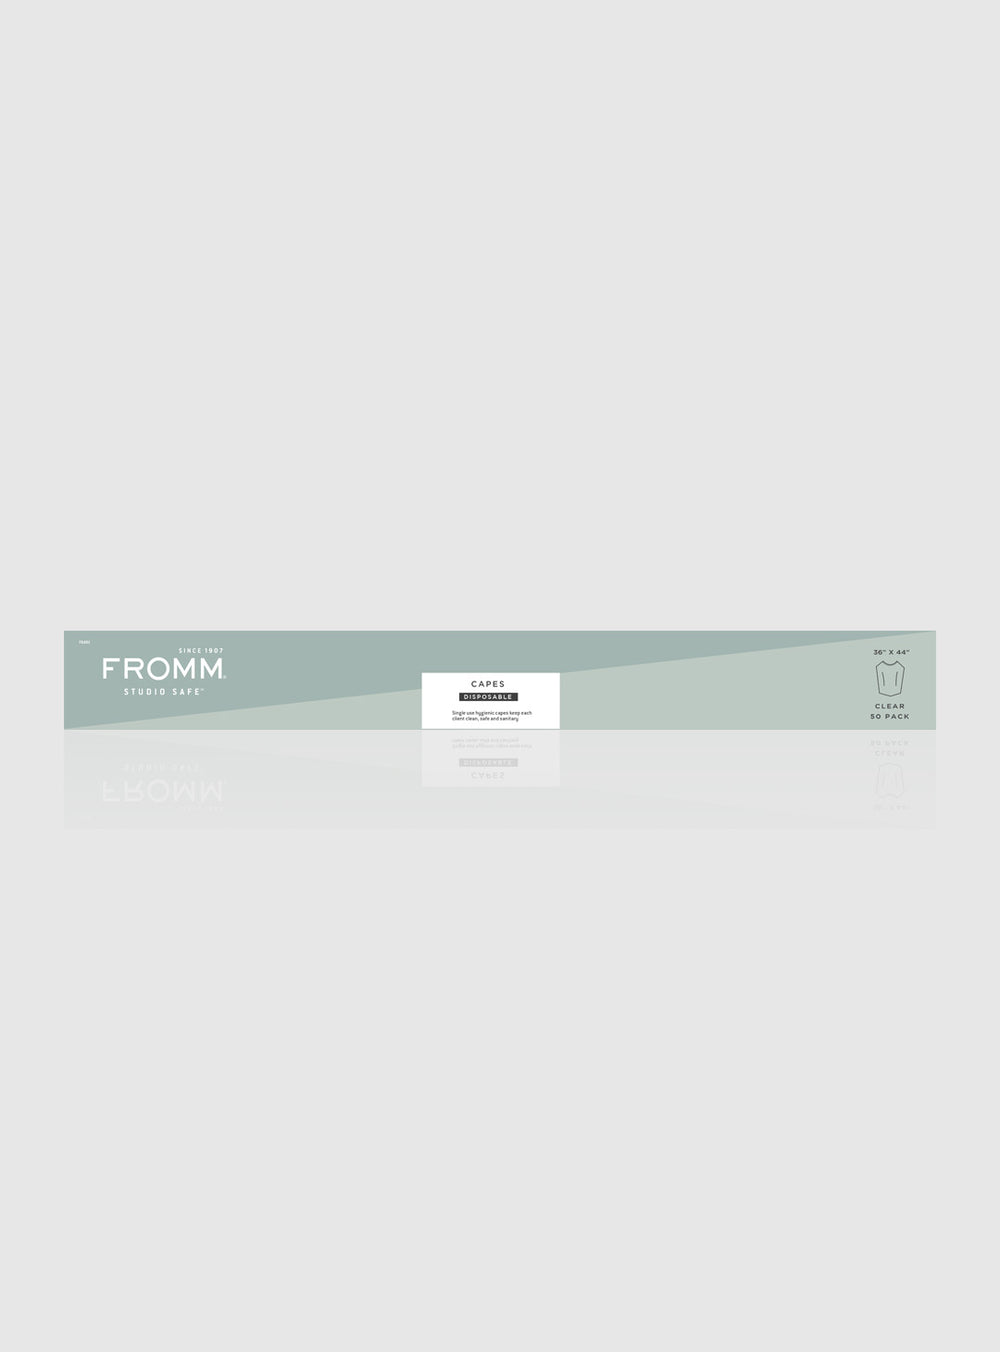 Fromm Pro Professional Salon clear disposable capes in packaging